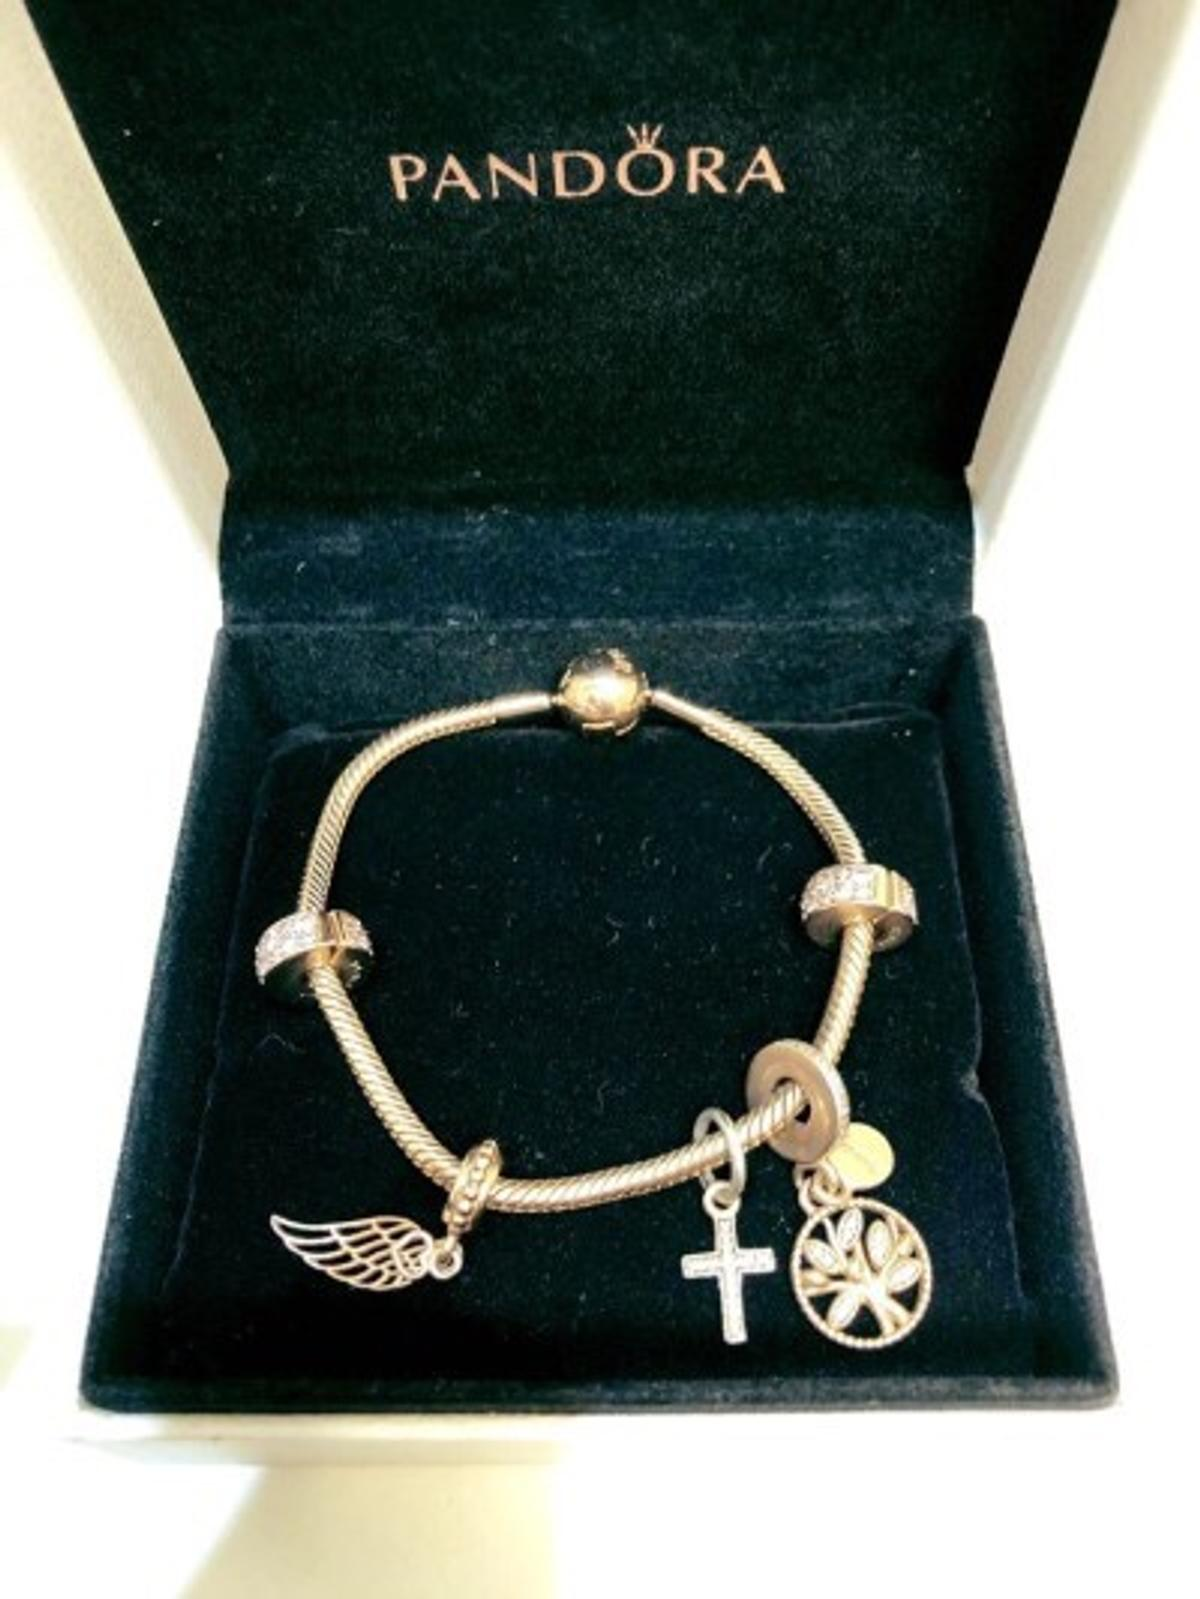 Pandora Rose Gold Bracelet And Charms In Ng25 Sherwood For 195 00 For Sale Shpock